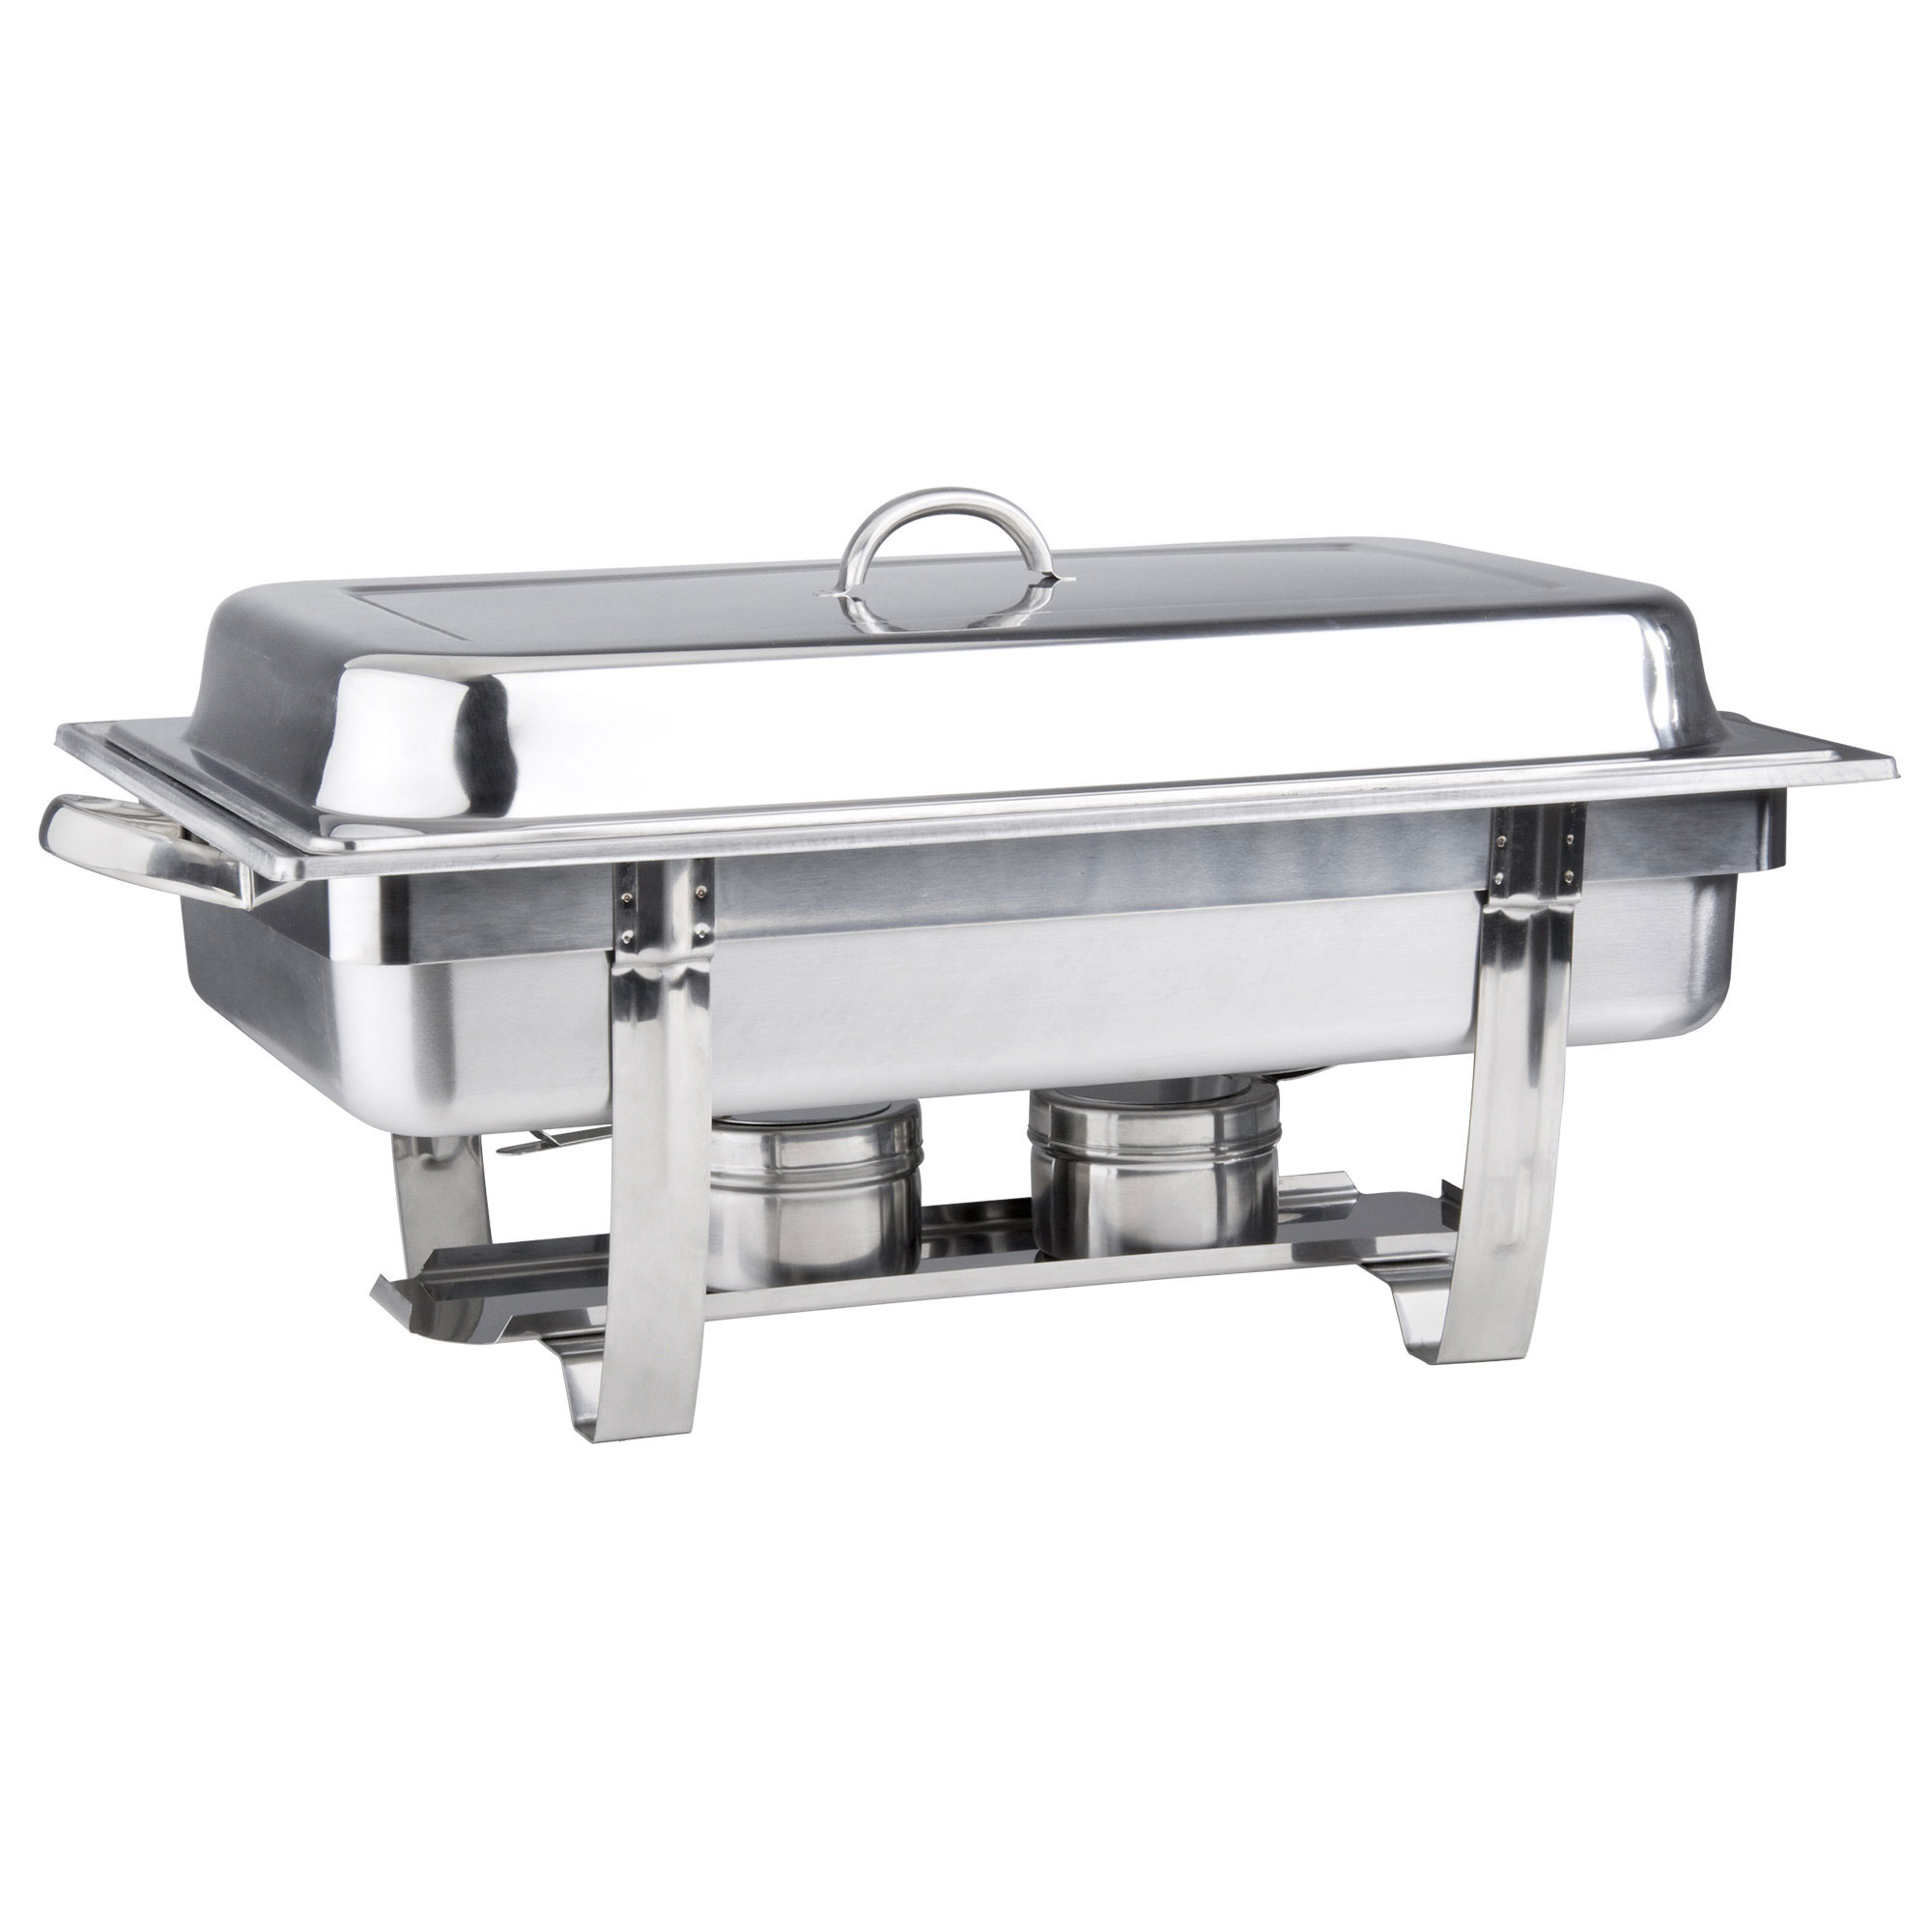 8 Quart Stainless Steel Chafer, Stackable